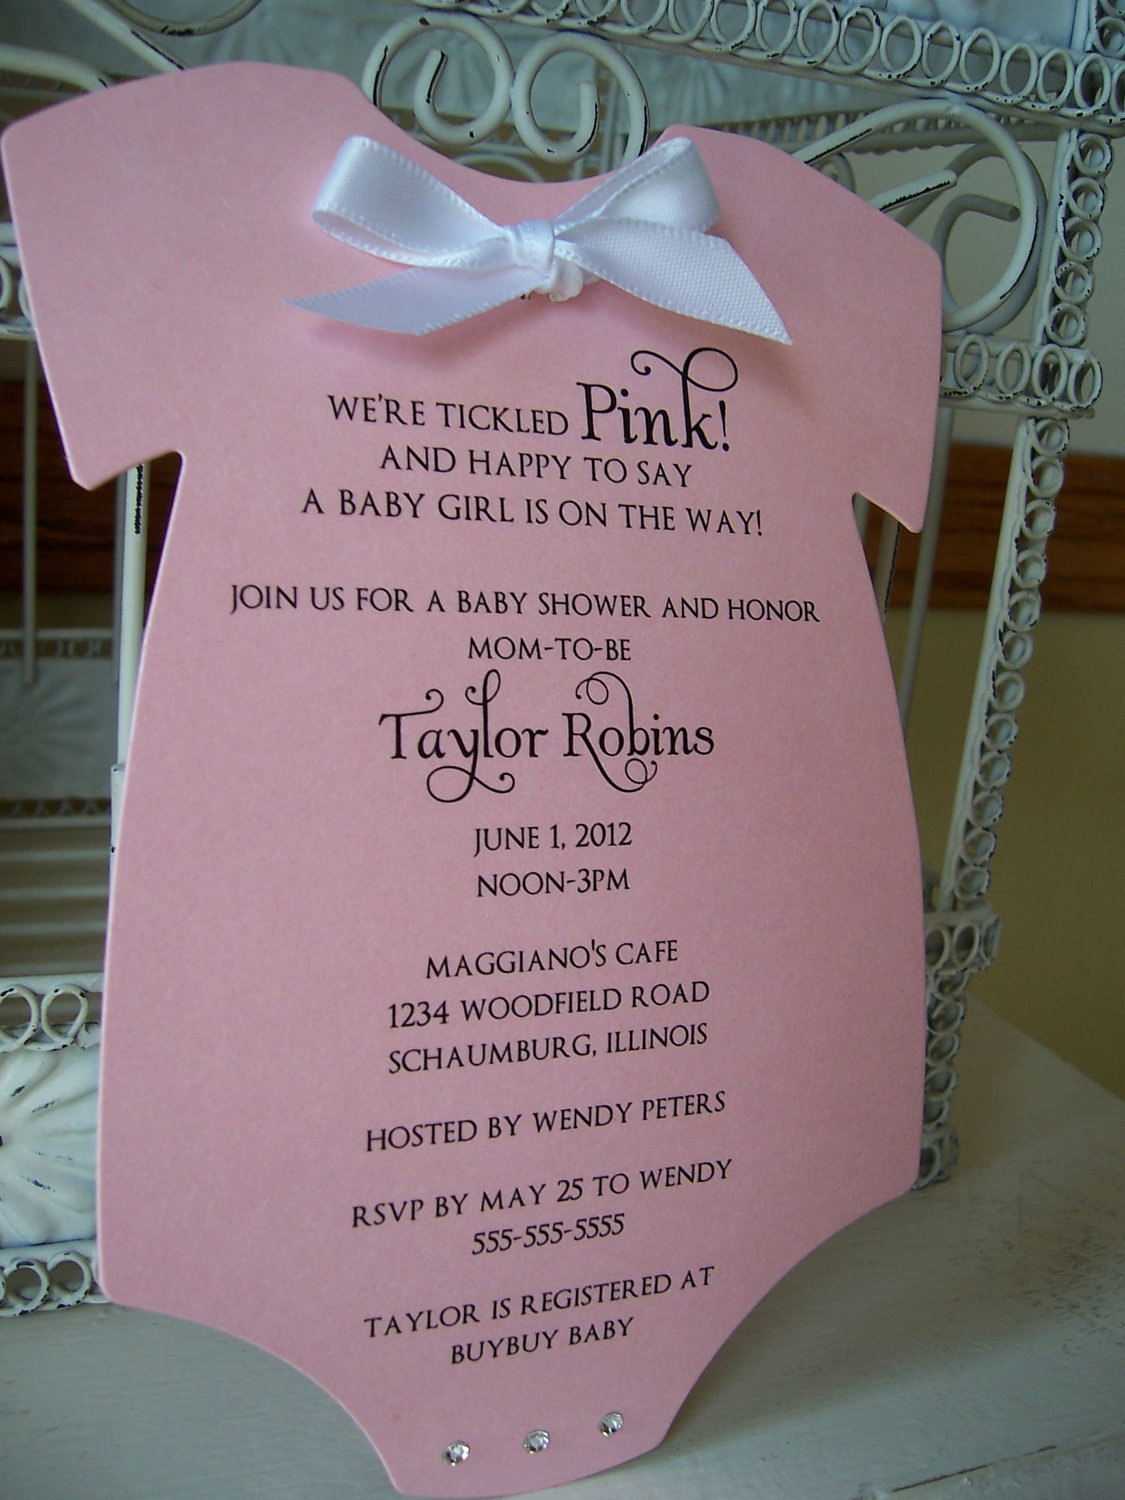 Baby Shower Invitation Example Fresh Think Pink Baby Shower Invitation Custom order for Shiloh